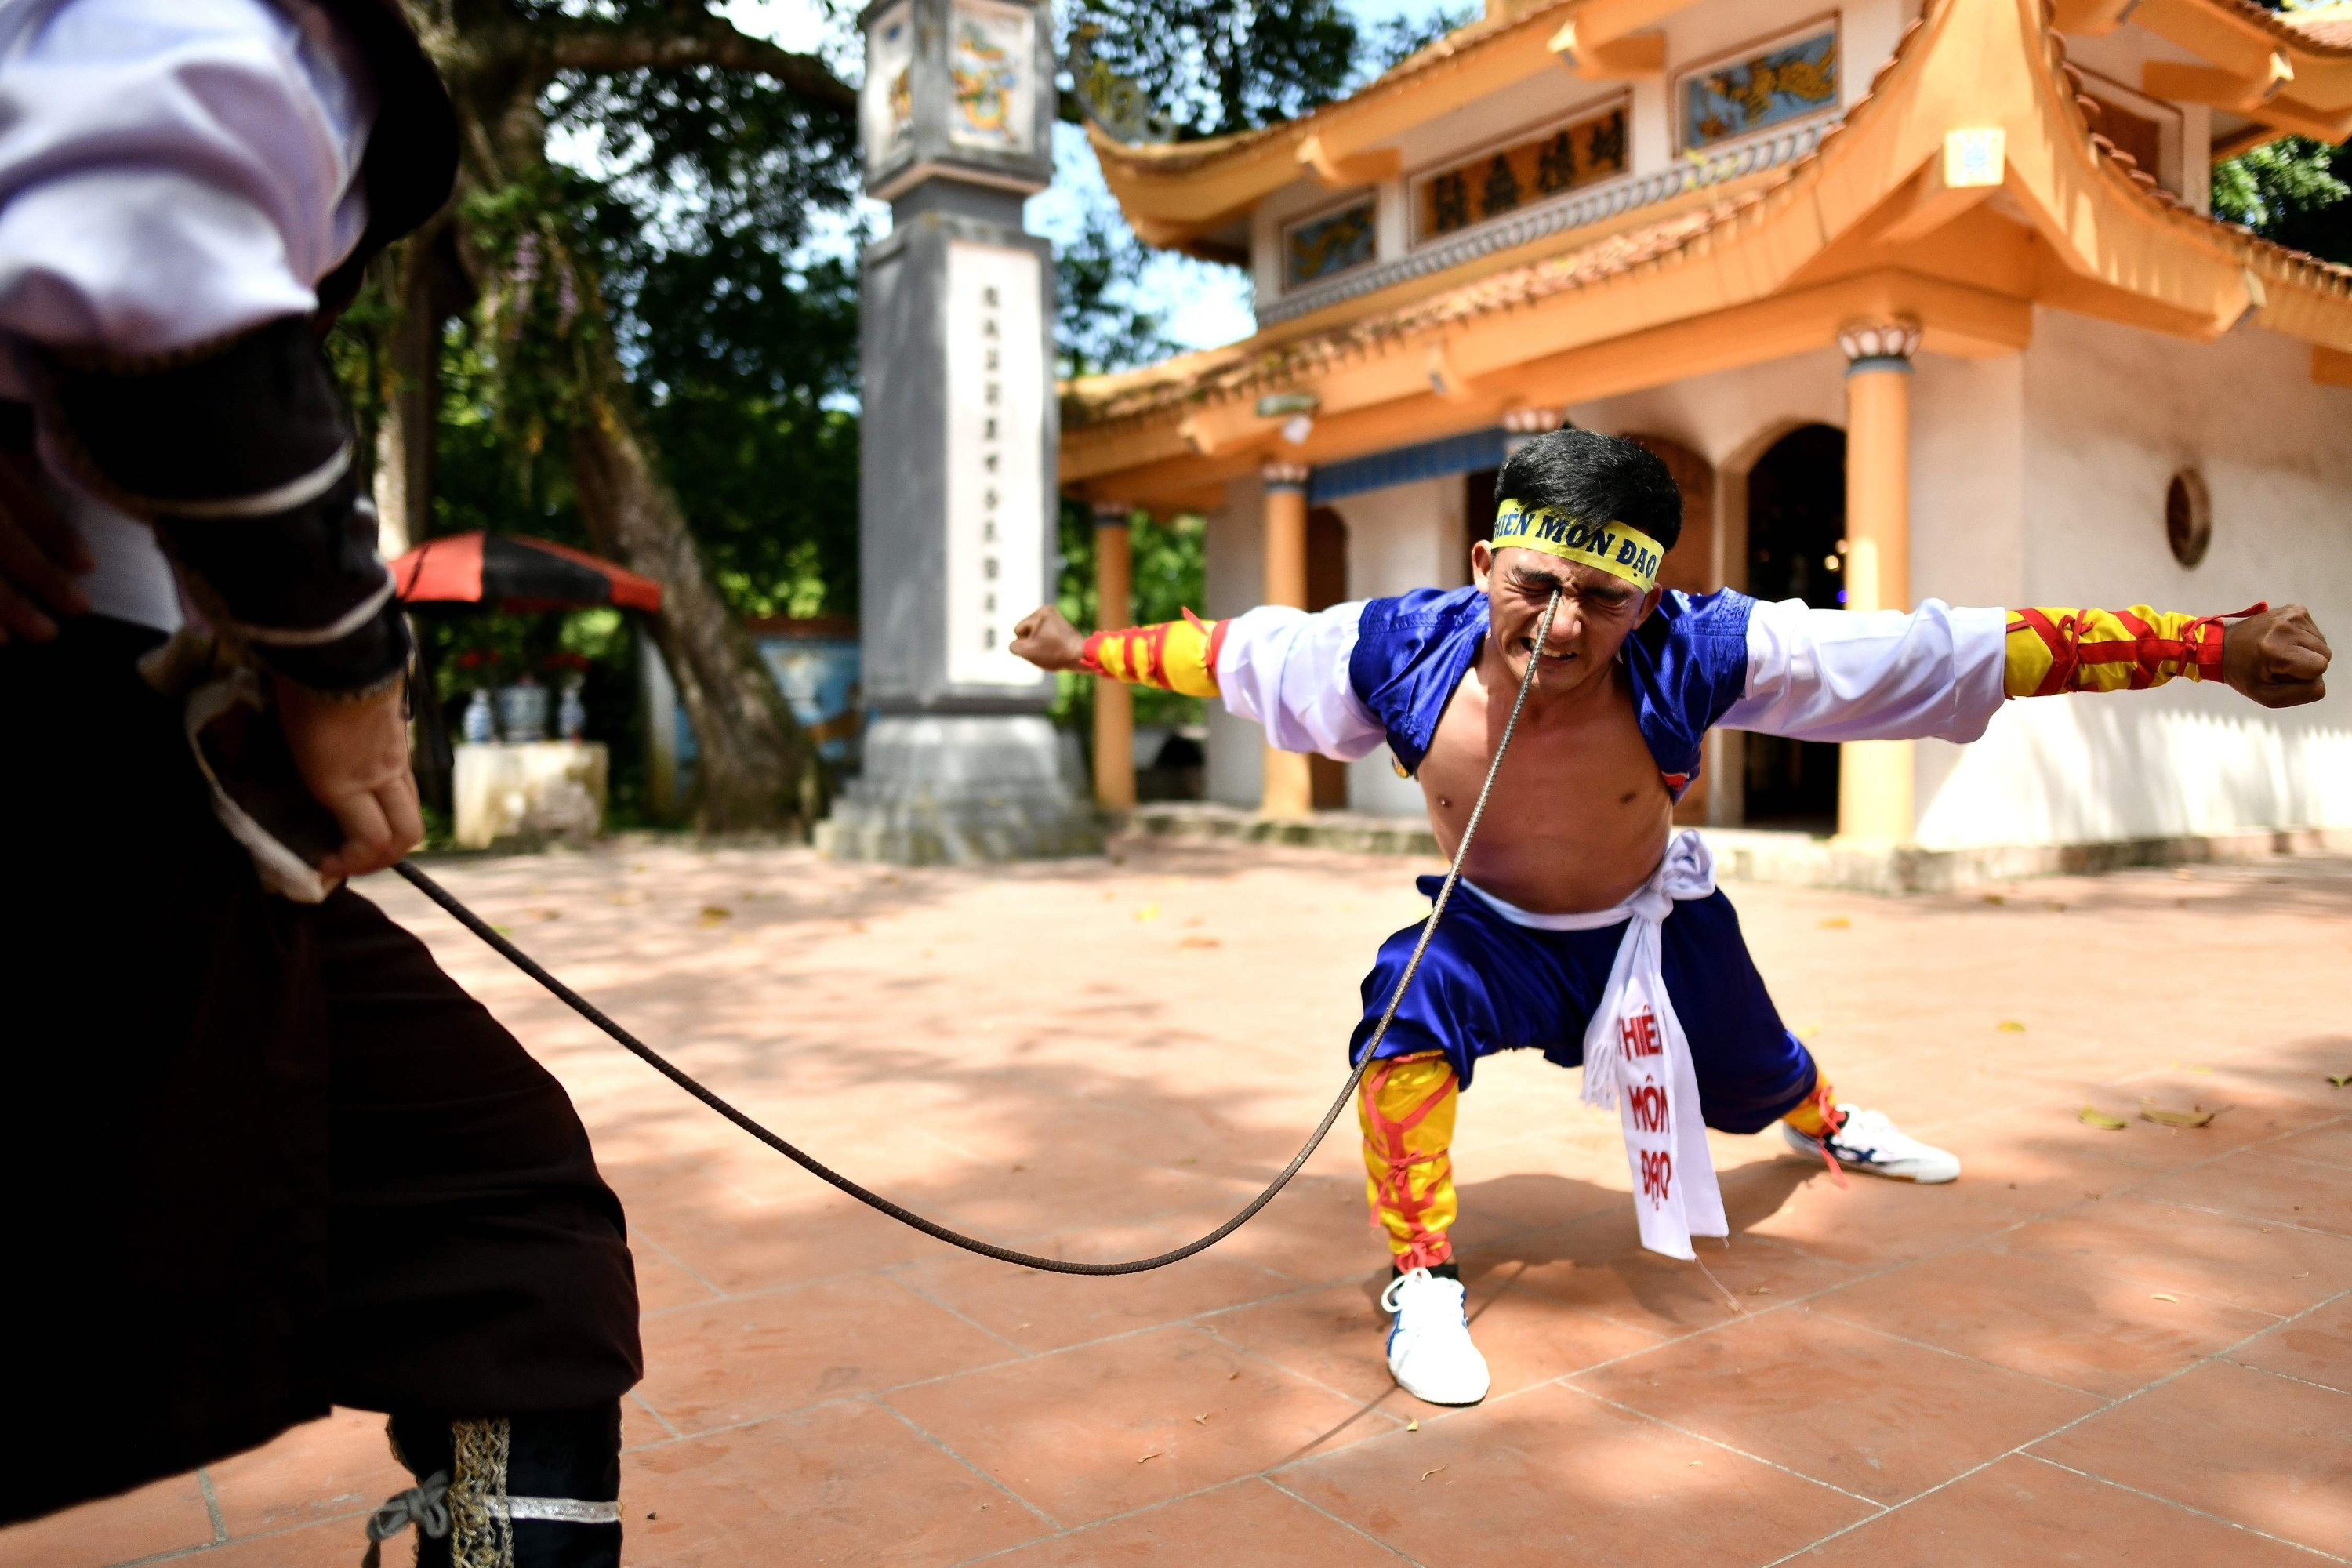 Le Van Thang, 28, student of the centuries-old martial art of Thien Mon Dao, bends a construction rebar against his eye socket inside the Bach Linh temple compound at Du Xa Thuong village in Hanoi, Vietnam, June 7, 2020. (AFP Photo)